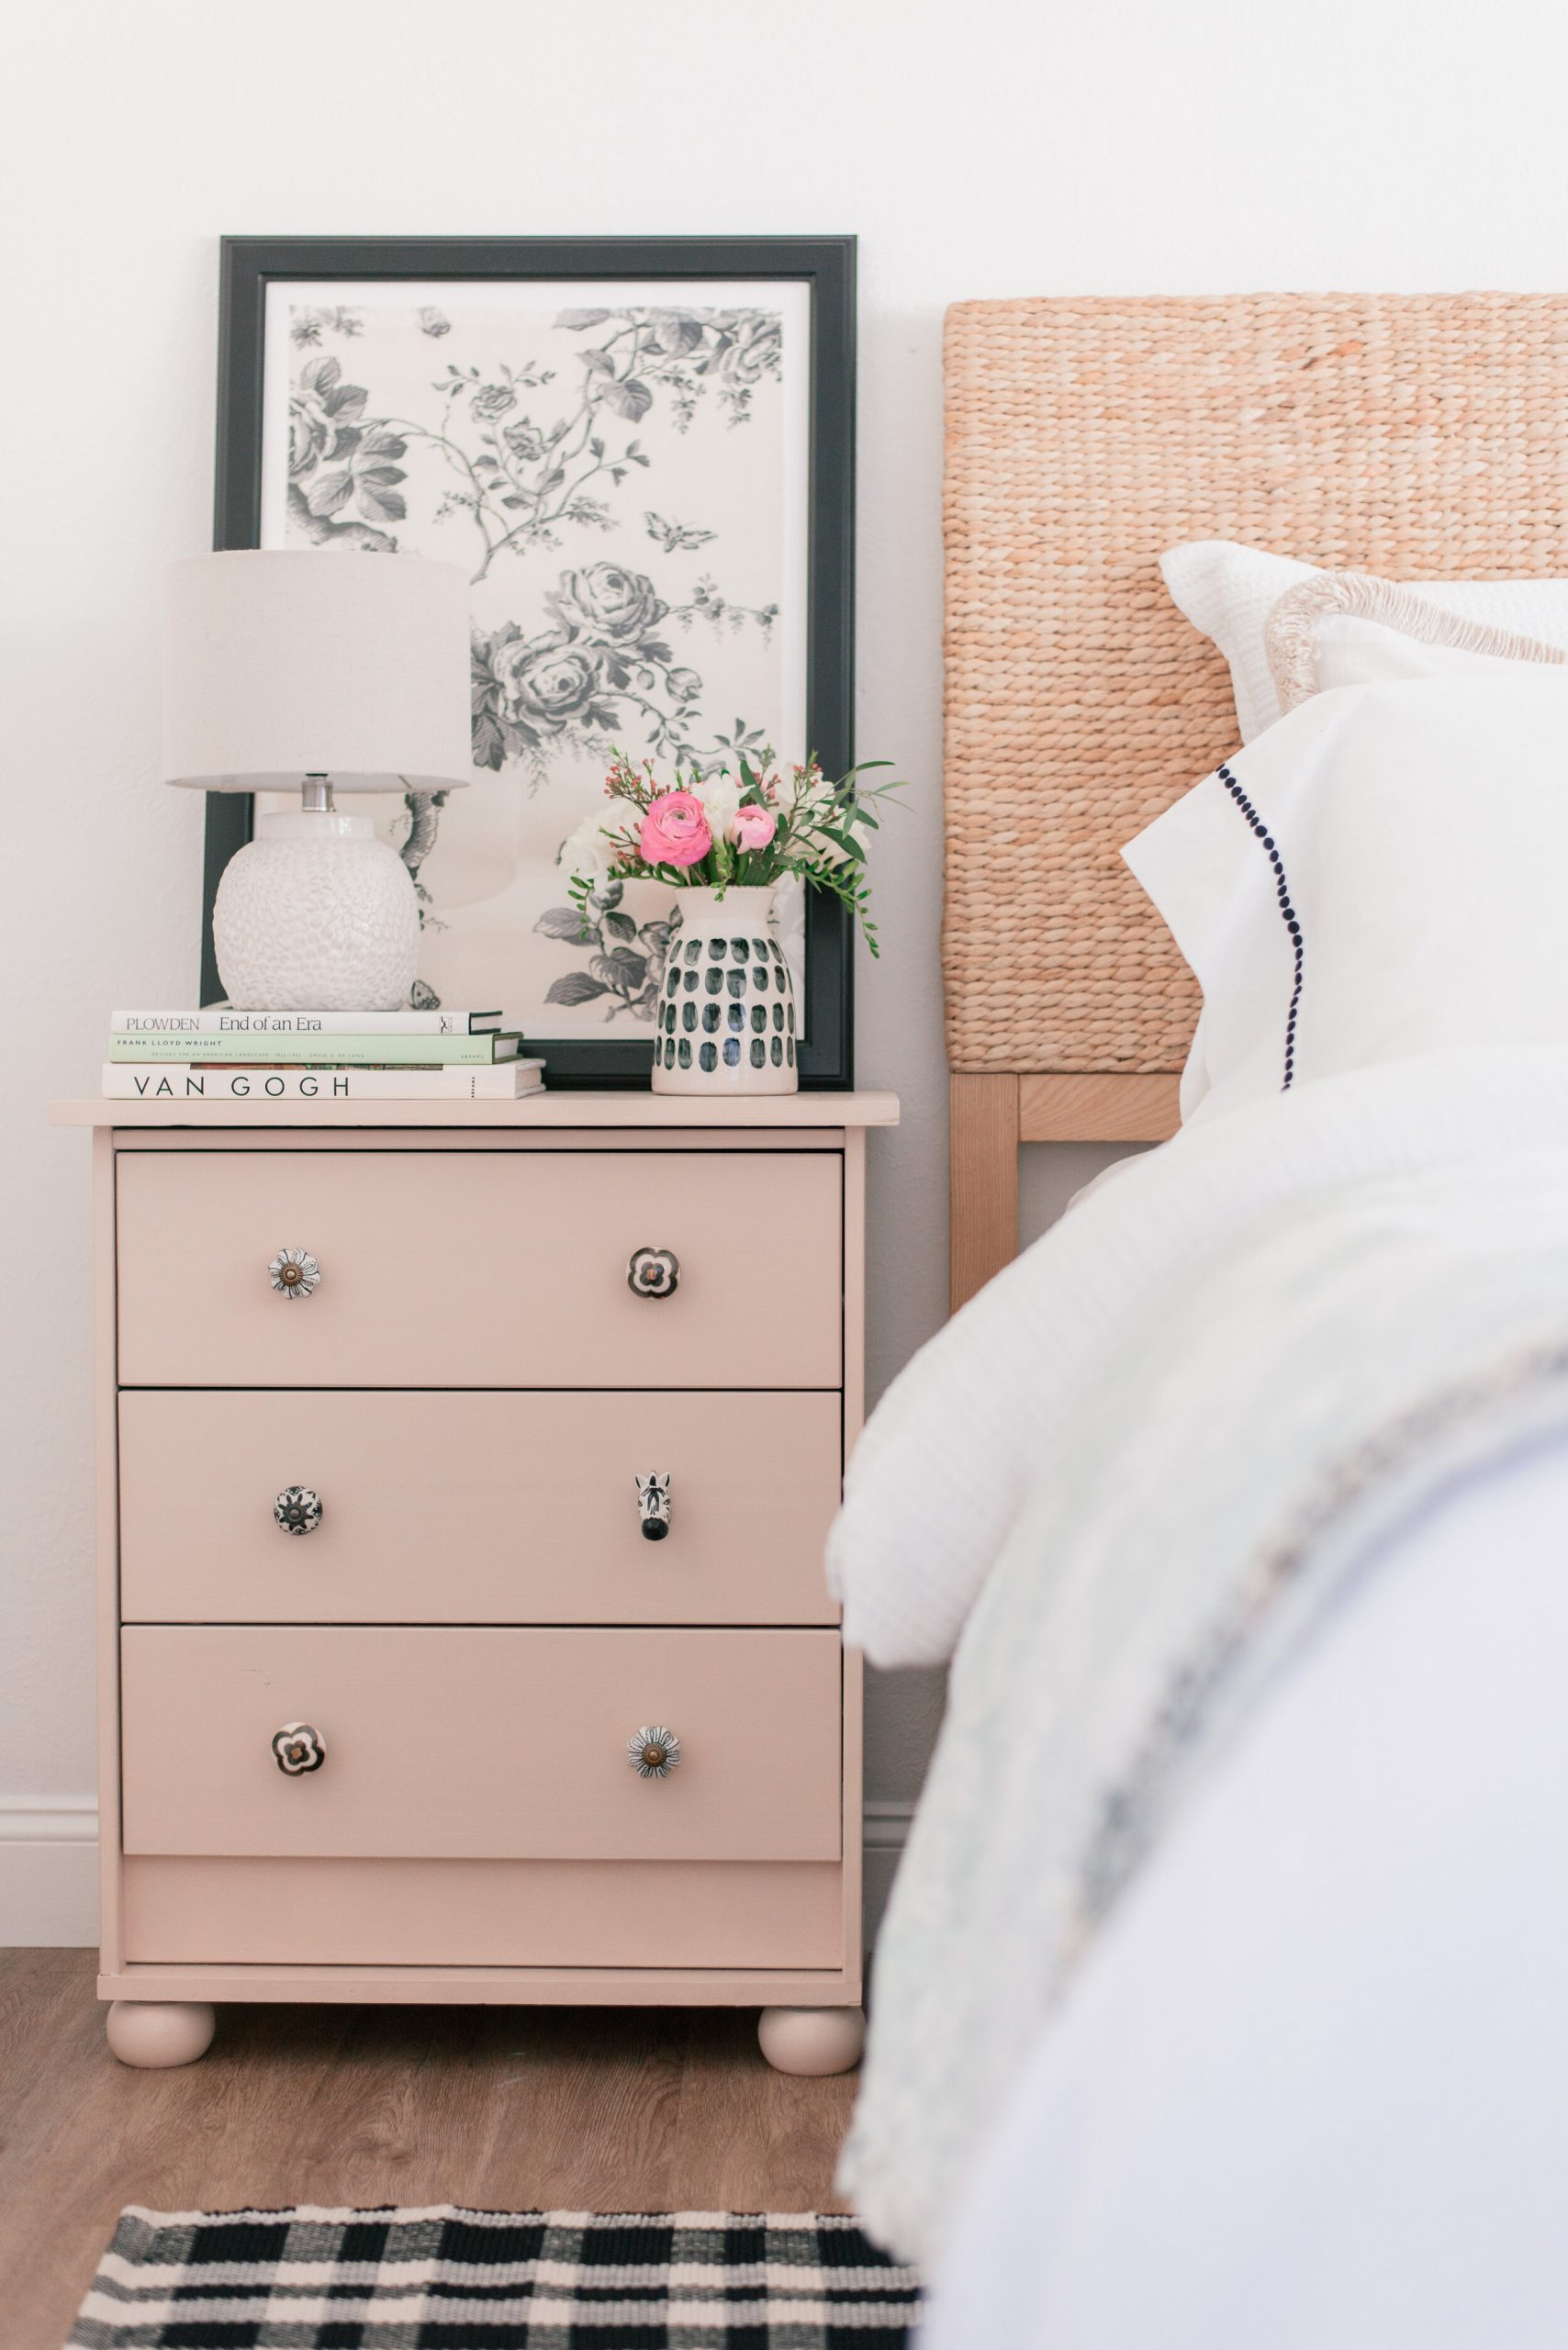 DIY Home Decor: Easy DIY Bedroom Nightstand Makeover